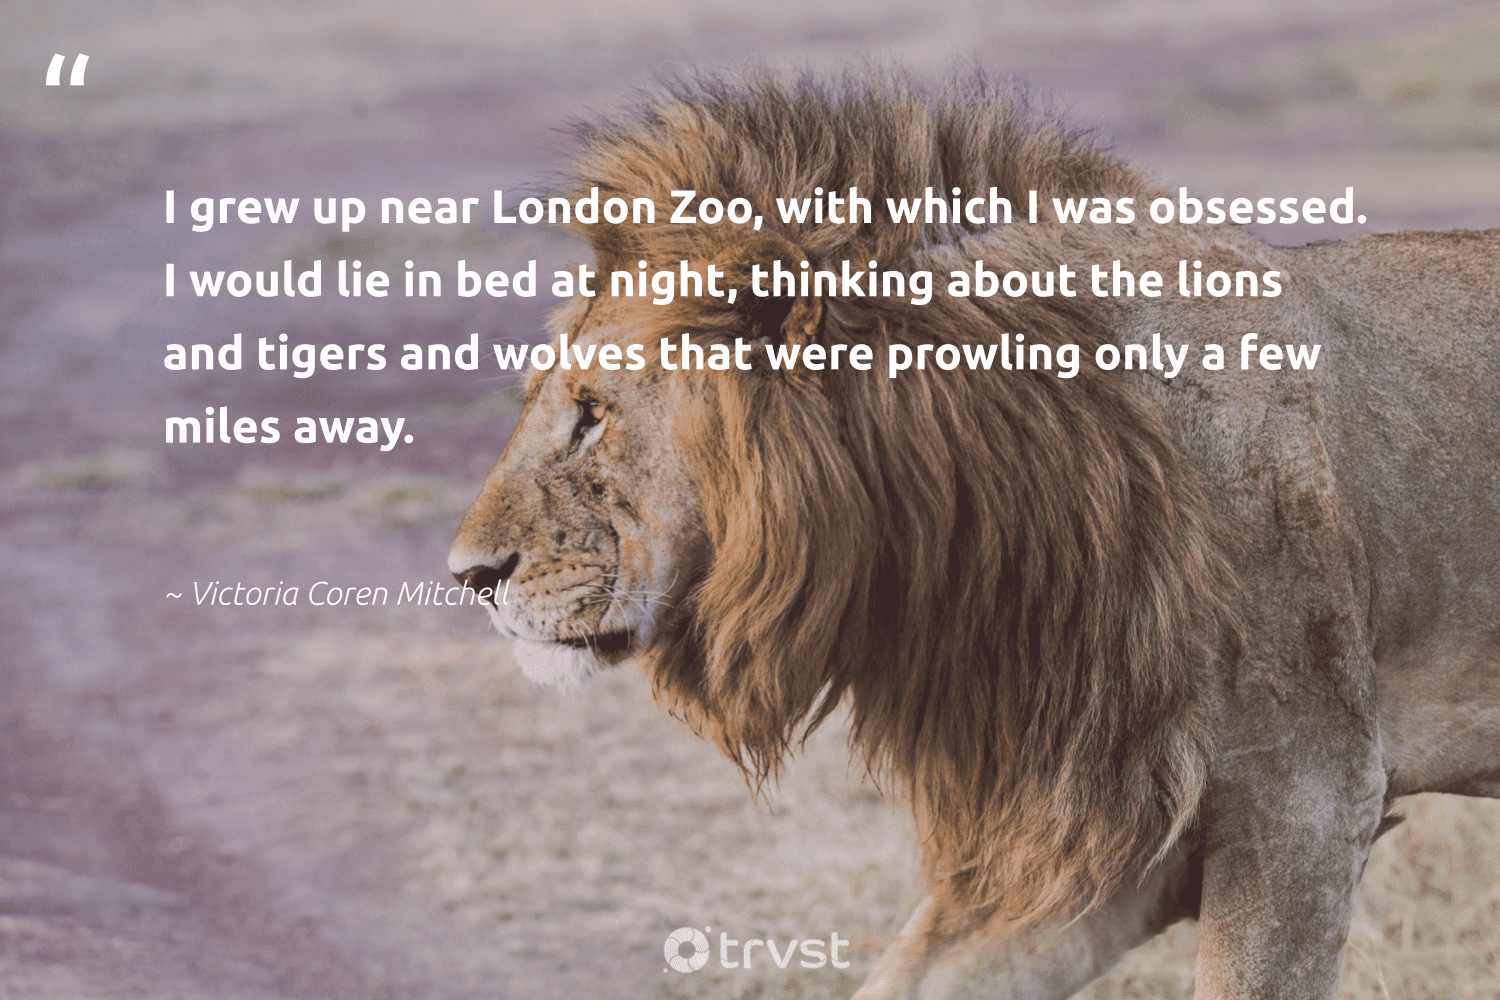 """""""I grew up near London Zoo, with which I was obsessed. I would lie in bed at night, thinking about the lions and tigers and wolves that were prowling only a few miles away.""""  - Victoria Coren Mitchell #trvst #quotes #lions #amazingworld #ecoconscious #wildlife #socialchange #sustainability #planetearthfirst #bigcats #beinspired #conservation"""